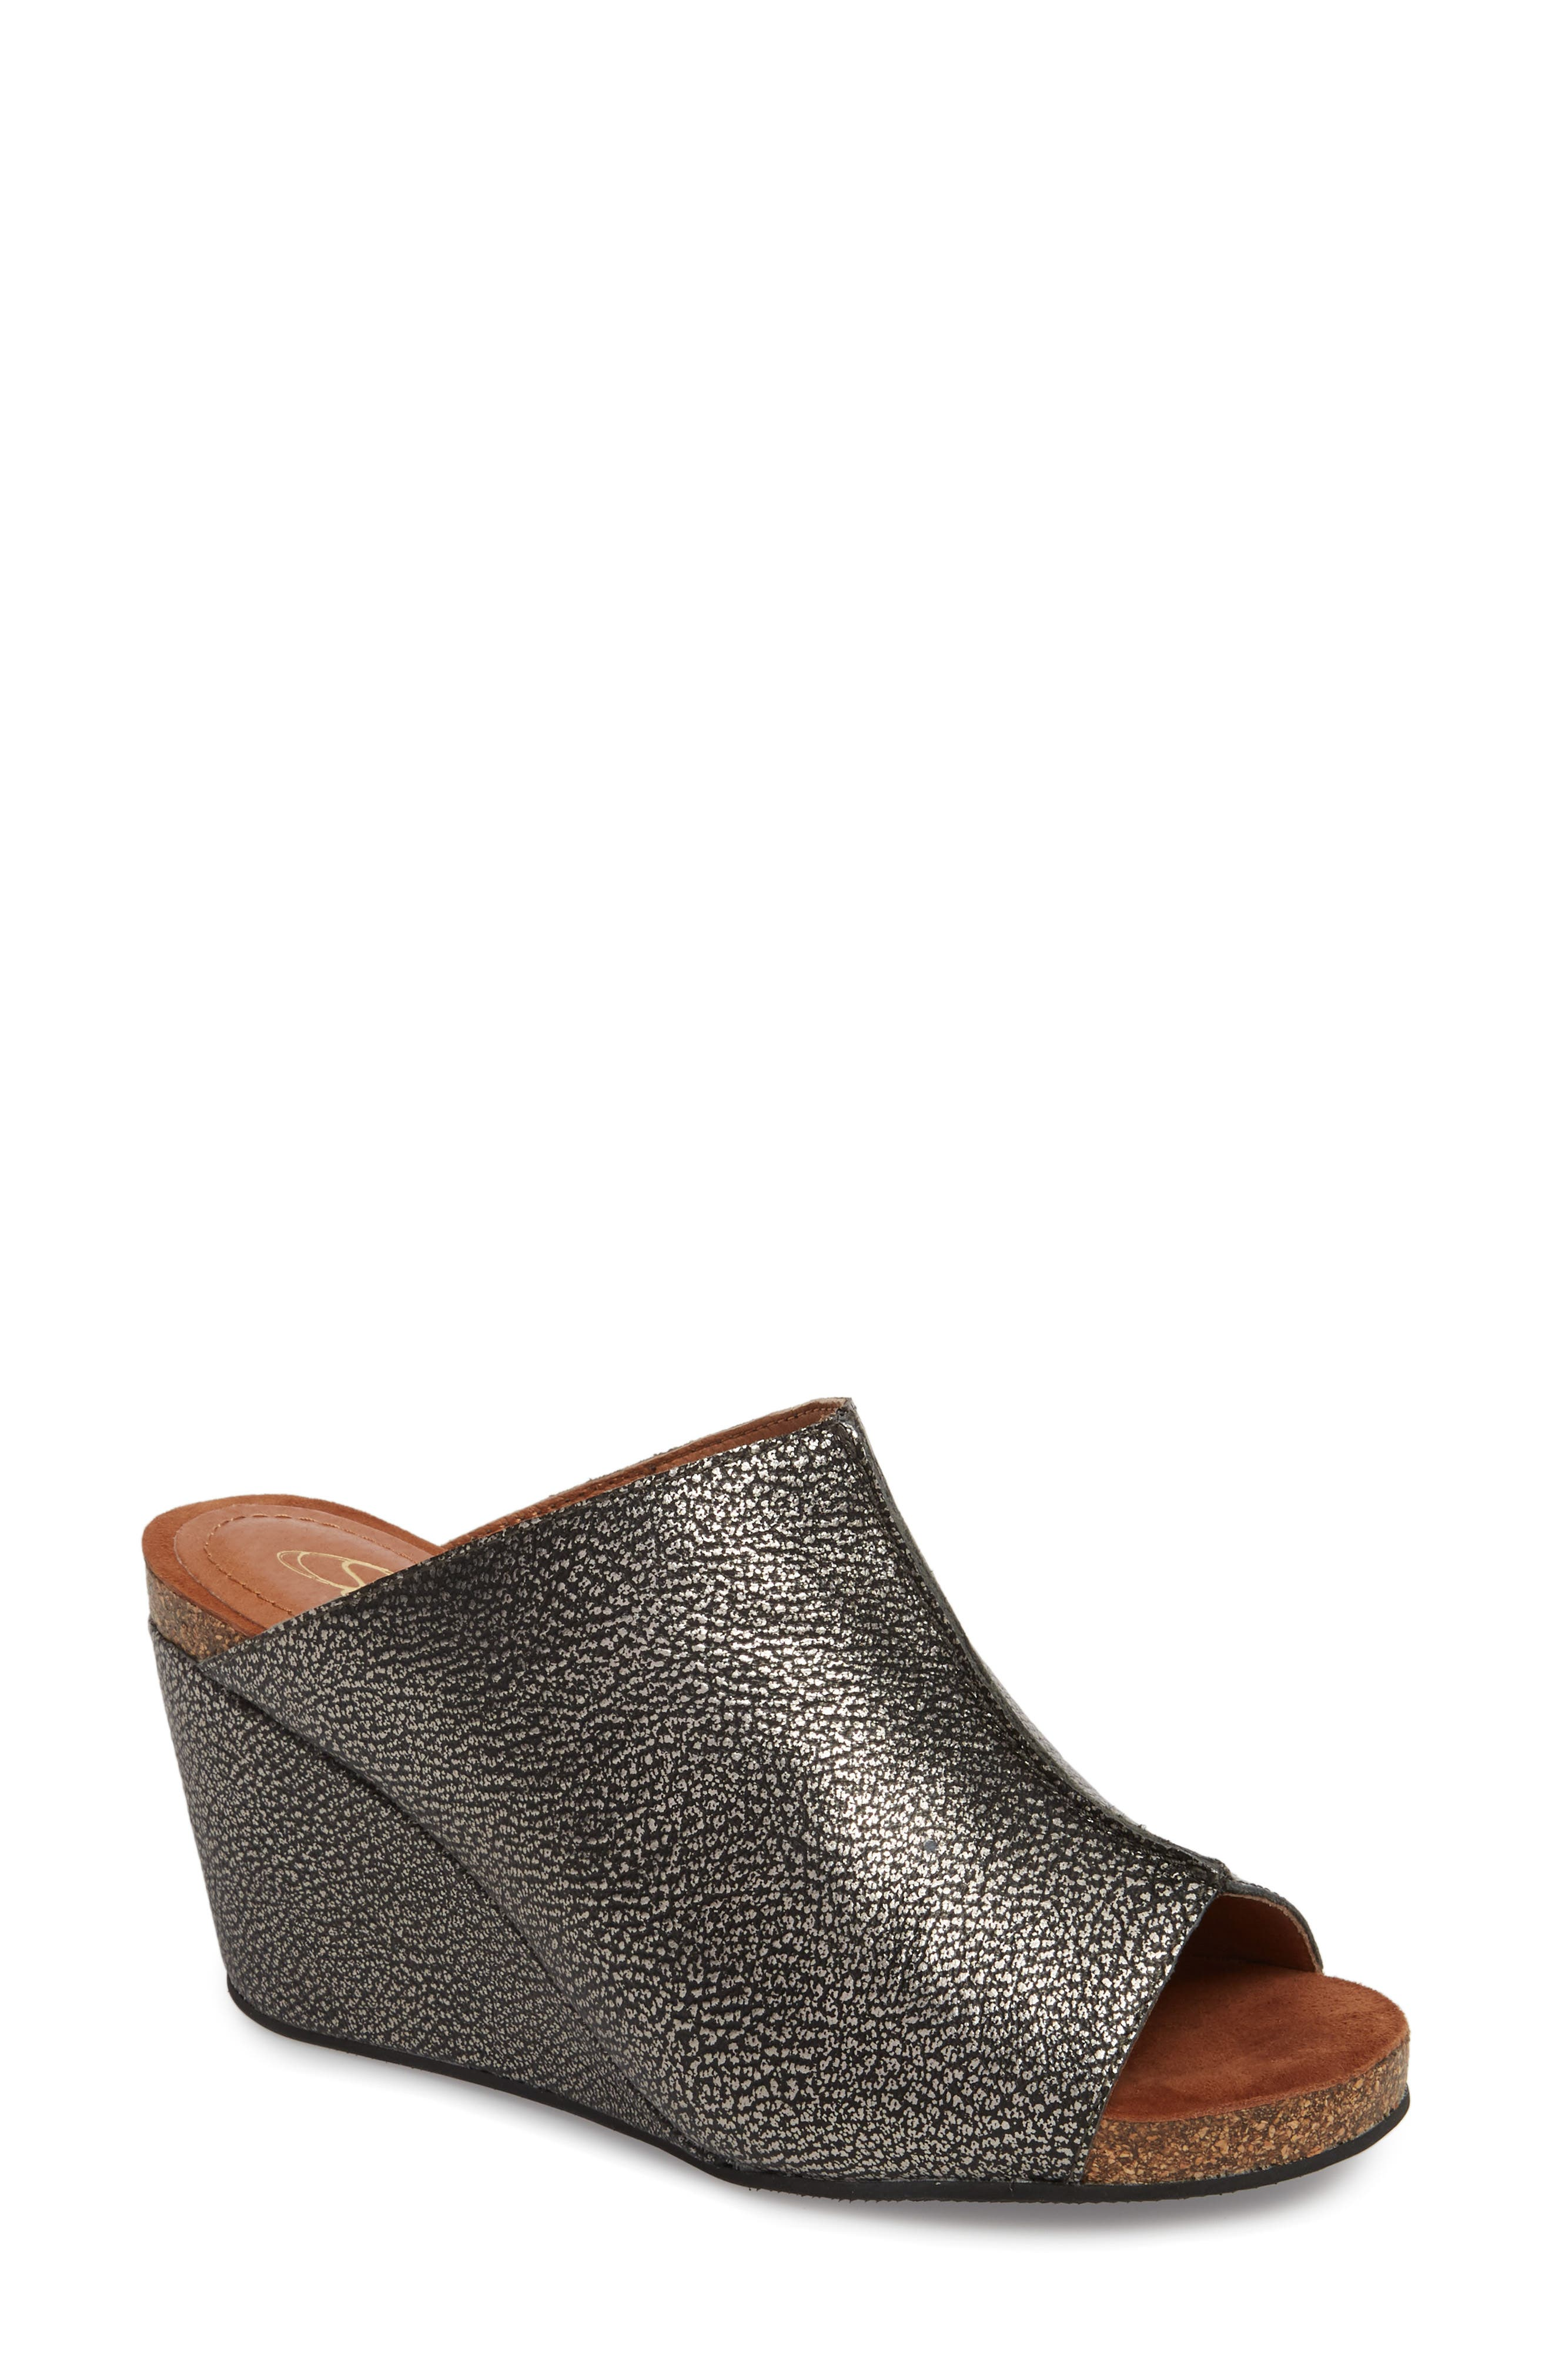 SUDINI, 'Bailey' Suede Wedge, Main thumbnail 1, color, PEWTER LEATHER